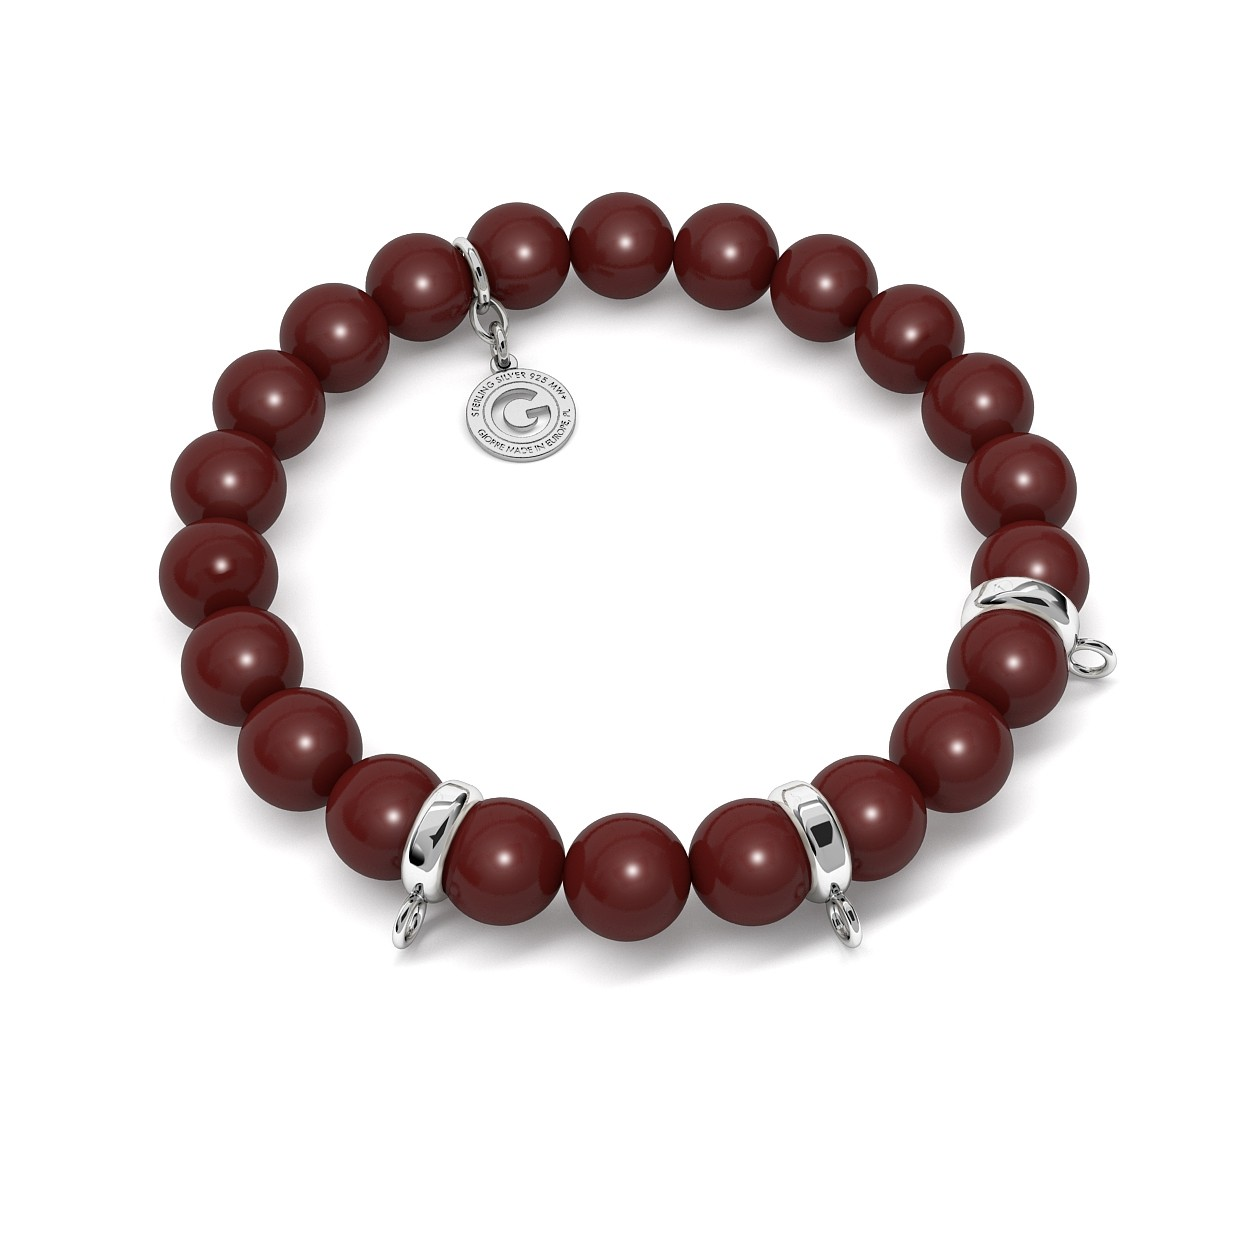 FLEXIBLE BRACELET WITH PEARLS (SWAROVSKI PEARL) FOR 3 CHARMS, SILVER 925, RHODIUM OR GOLD PLATED